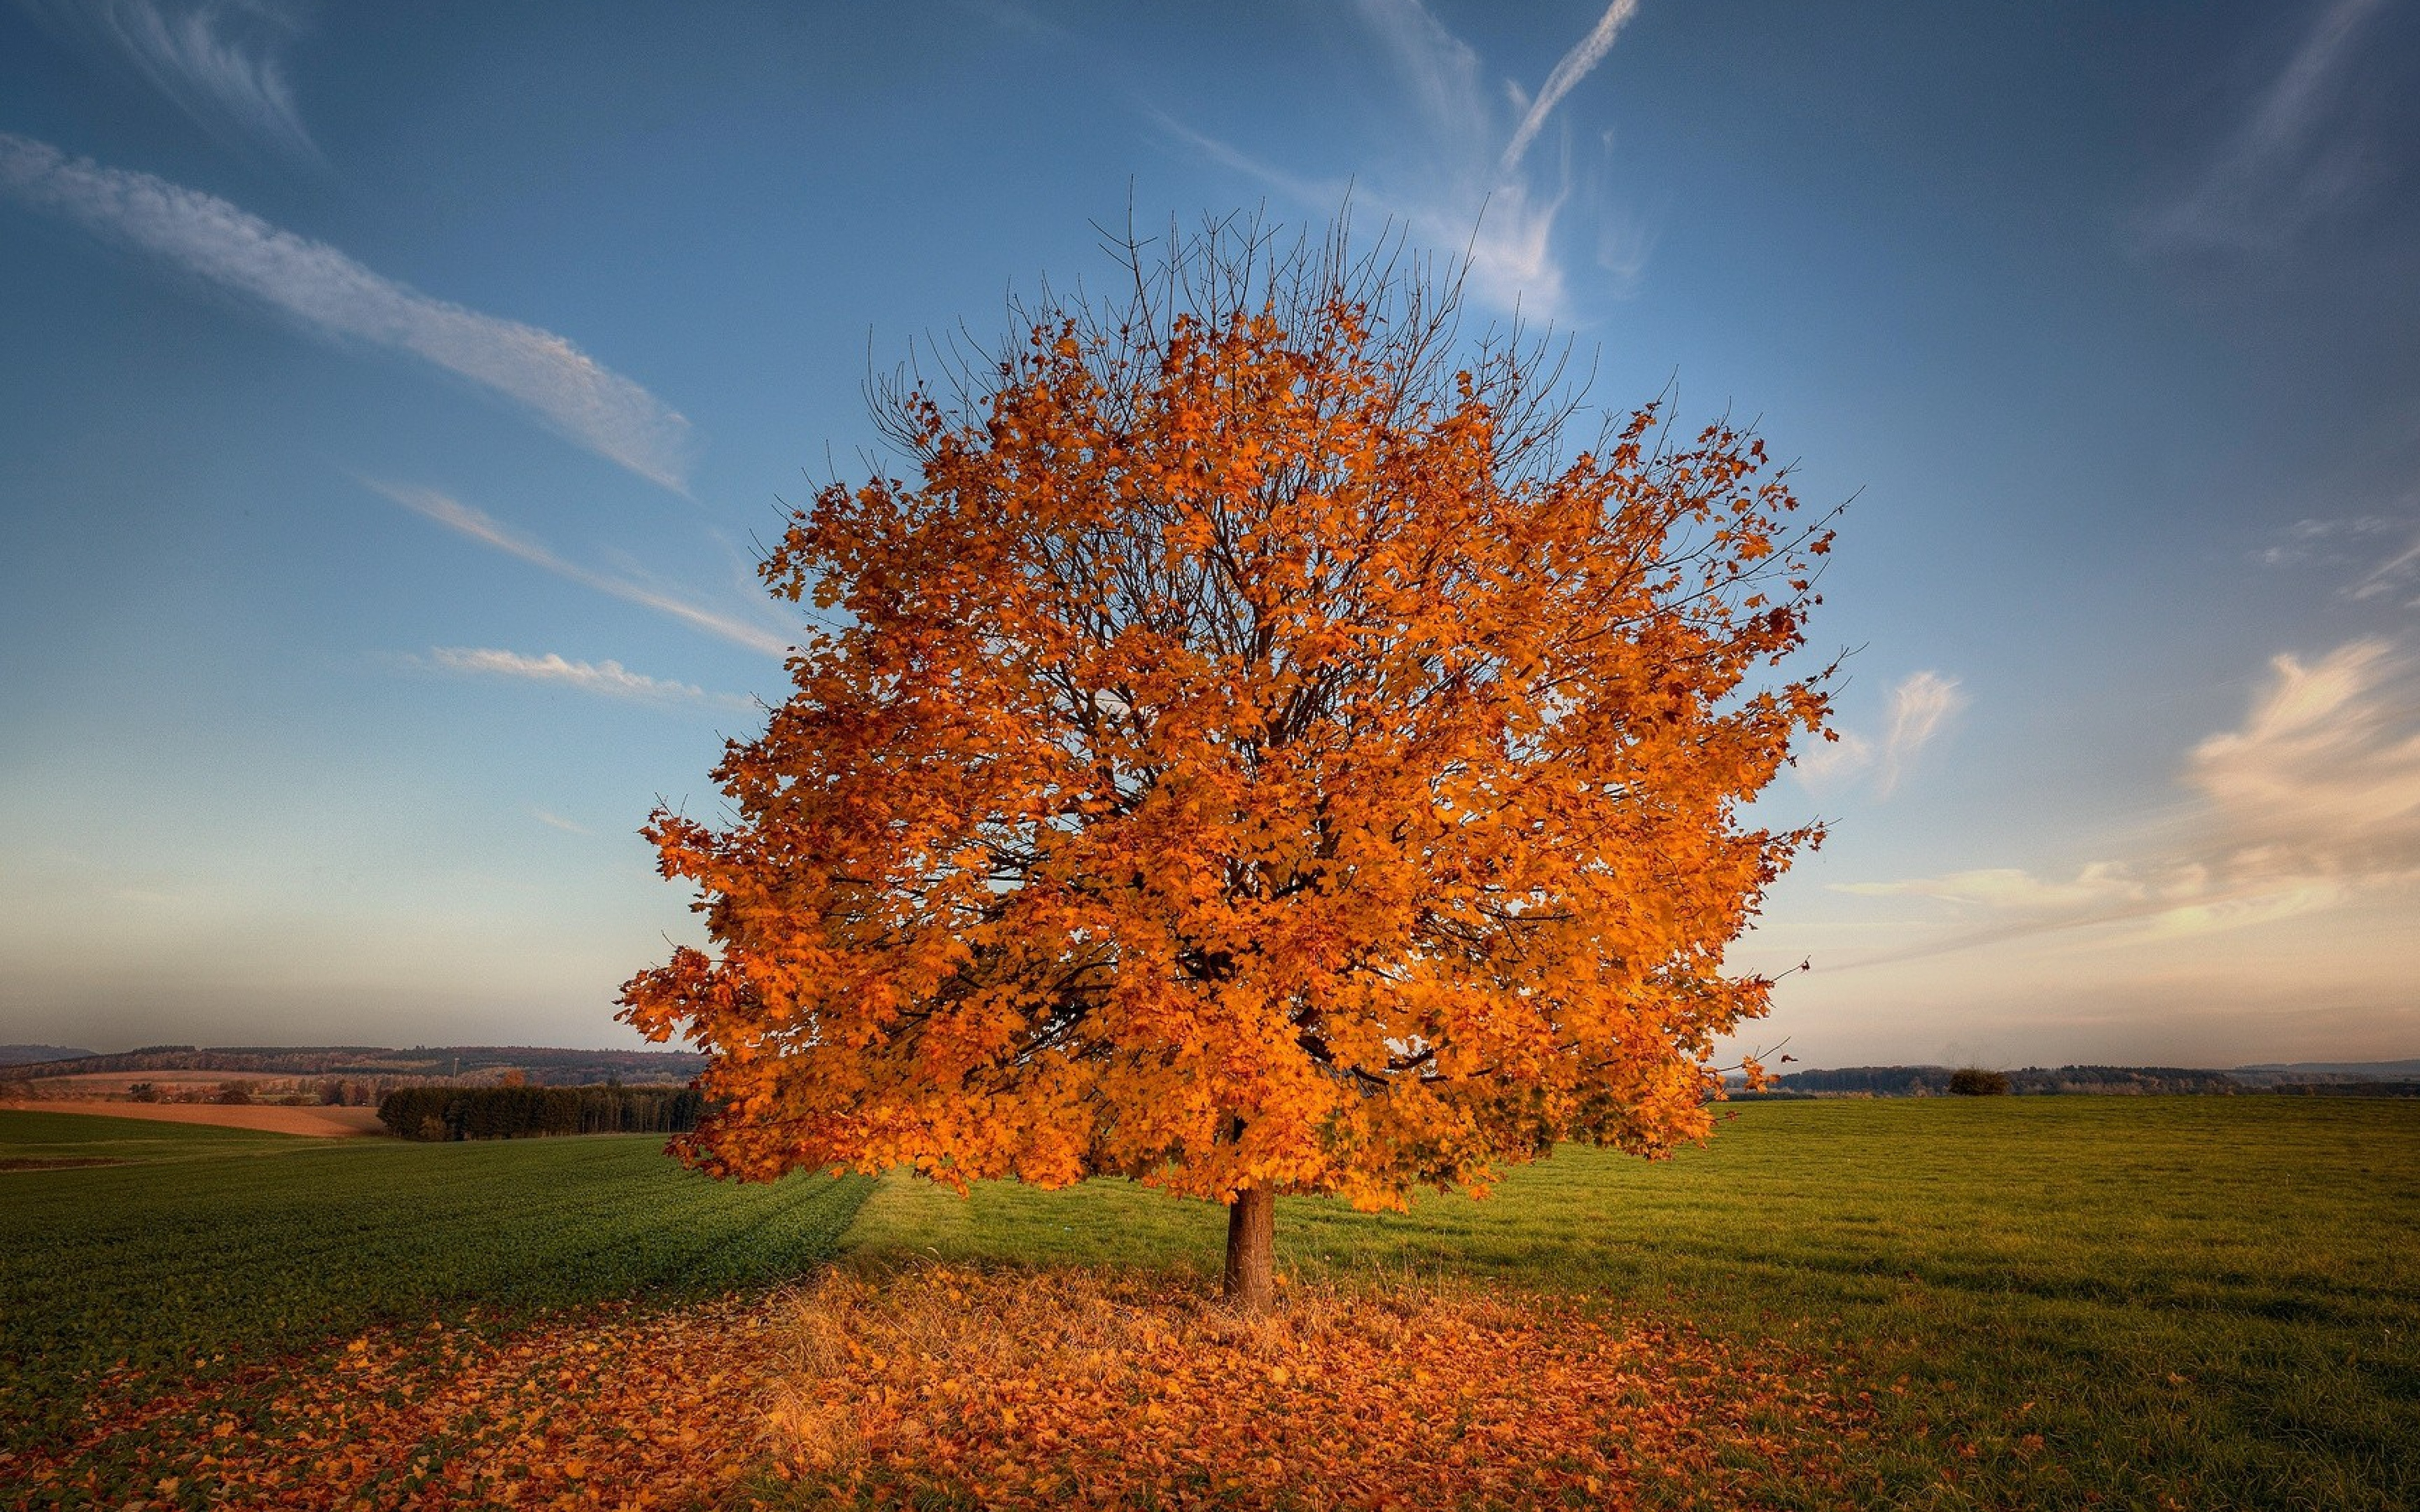 tree-autumn-field.jpg